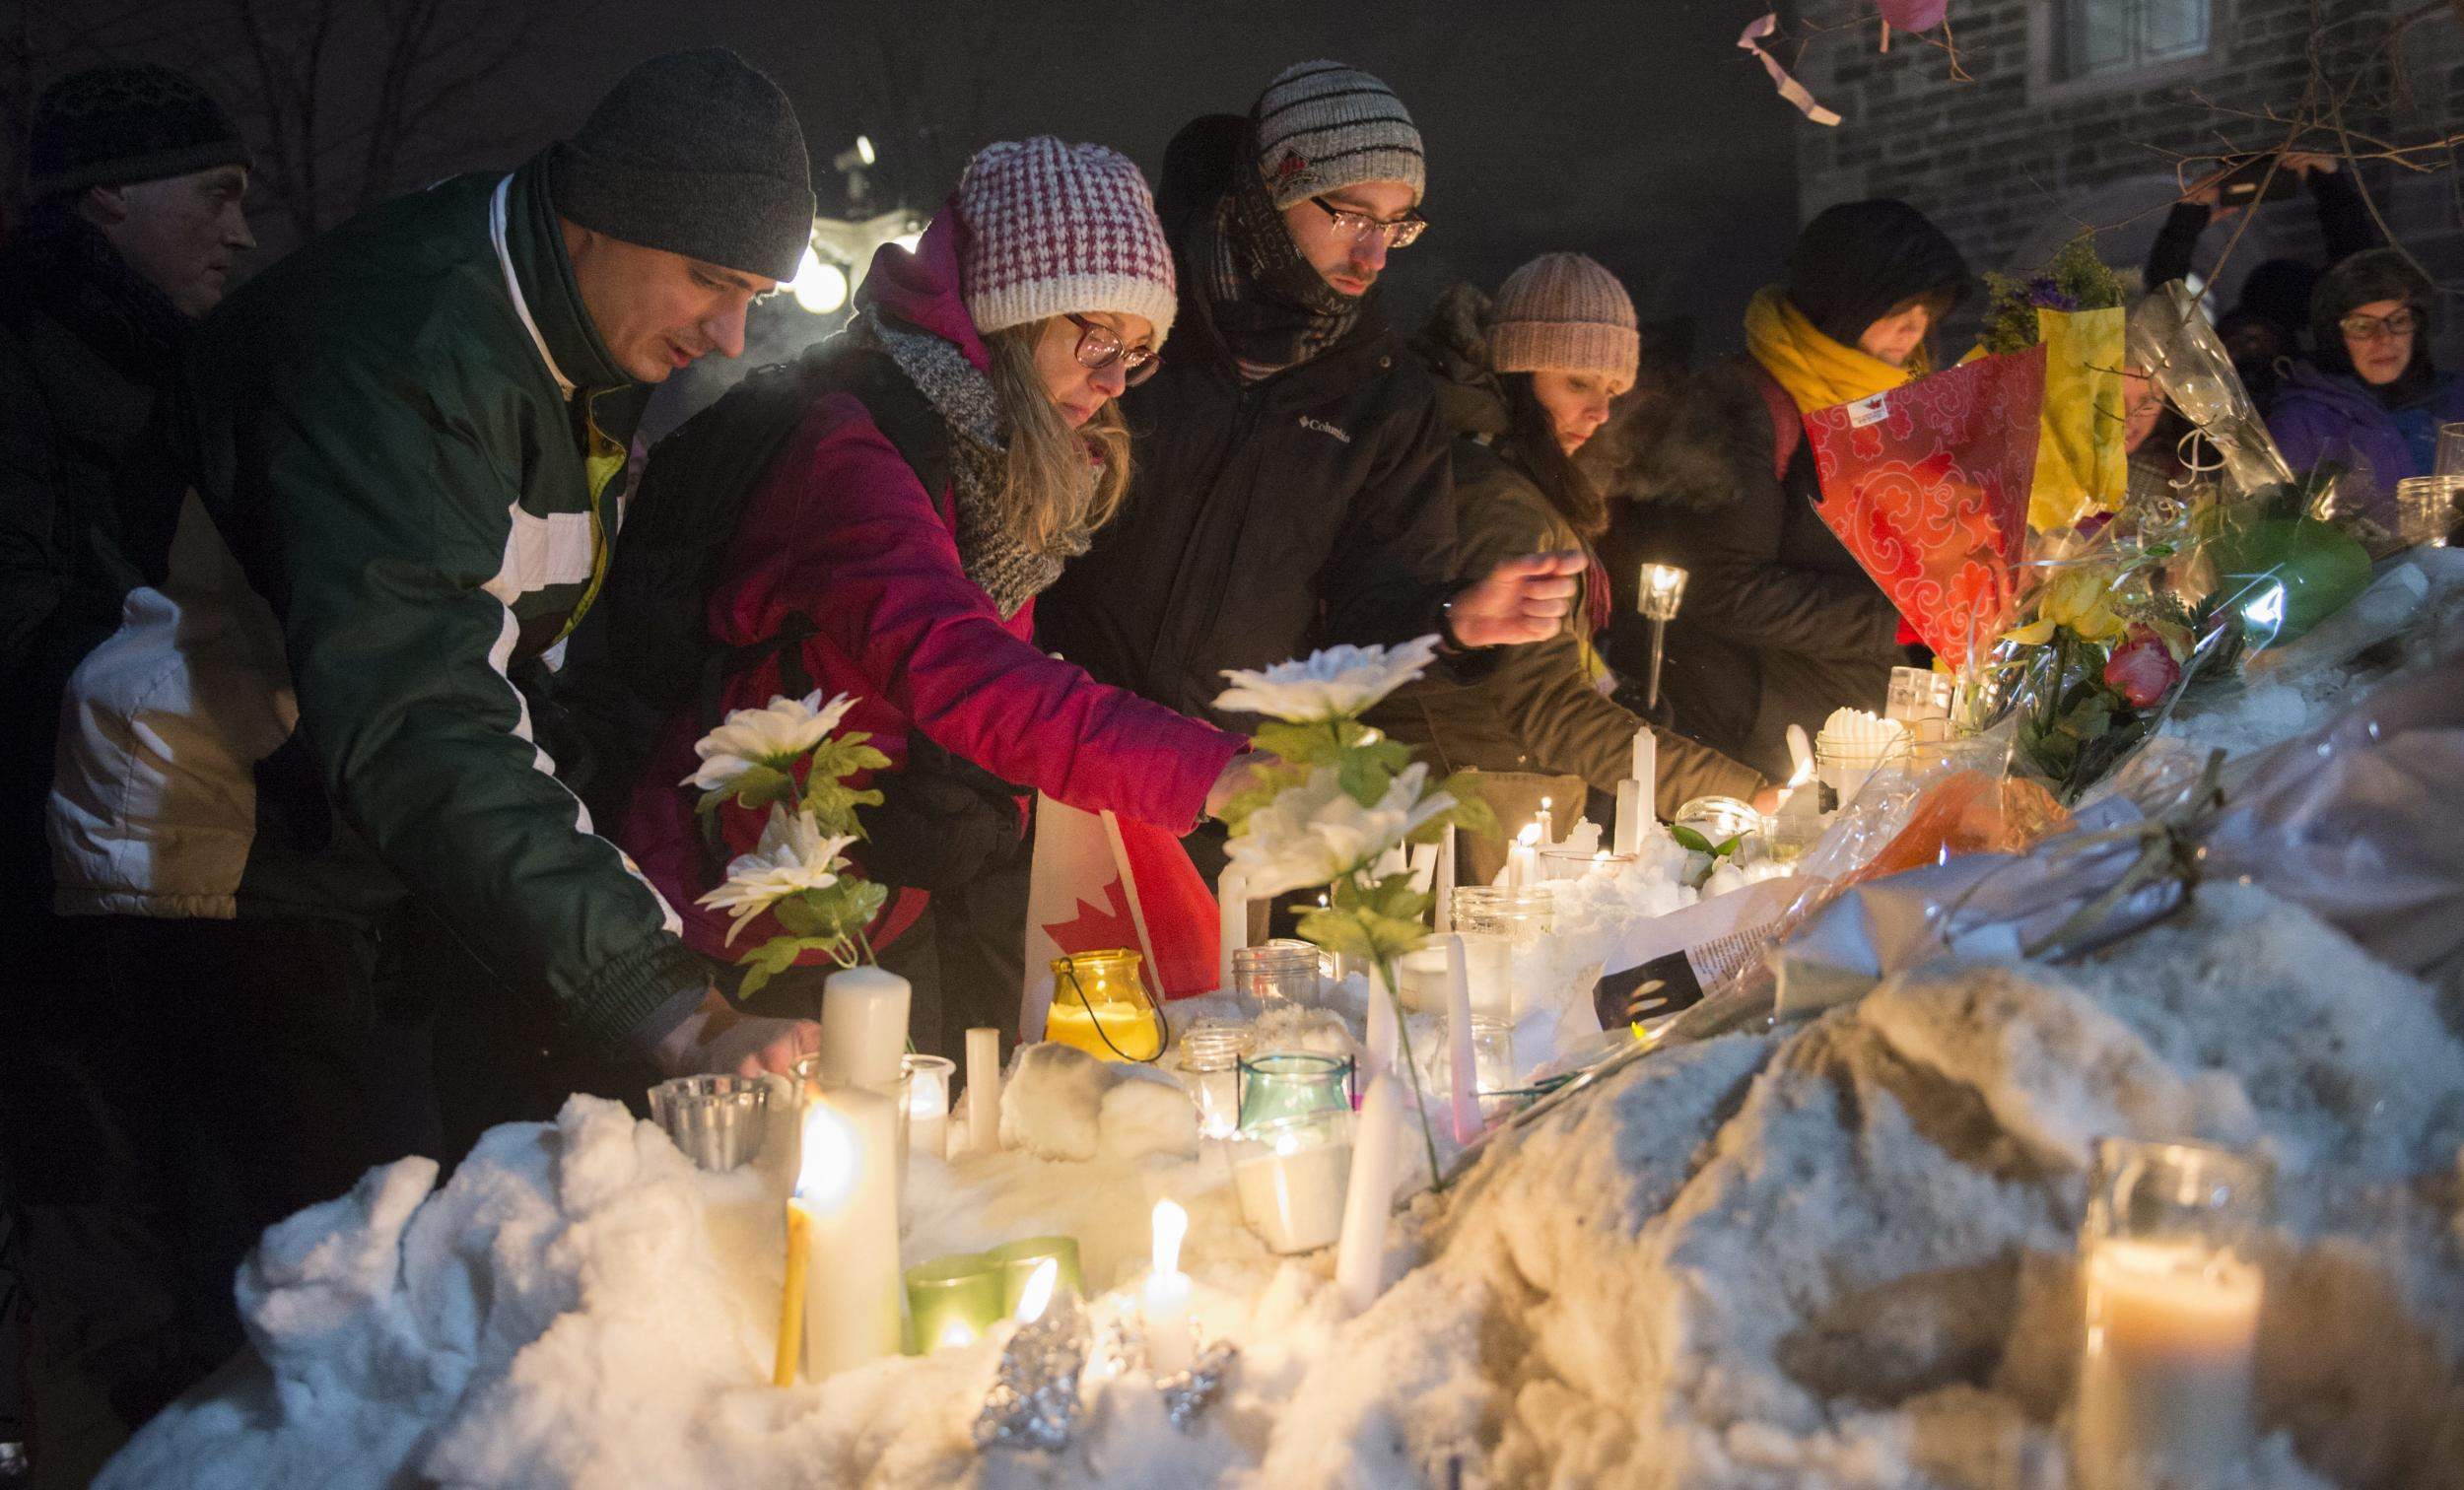 Canadians raise more that £350,000 for Muslims affected by Quebec on chile people, bc canada people, victoria canada people, vancouver canada people, hong kong people, calgary canada people, yukon canada people, prince edward island canada people, nunavut canada people, newfoundland canada people, new brunswick canada people, toronto canada people, quebec's people, alberta canada people, ottawa canada people, tokyo japan people, ontario canada people, france people, churchill canada people, montreal canada people,